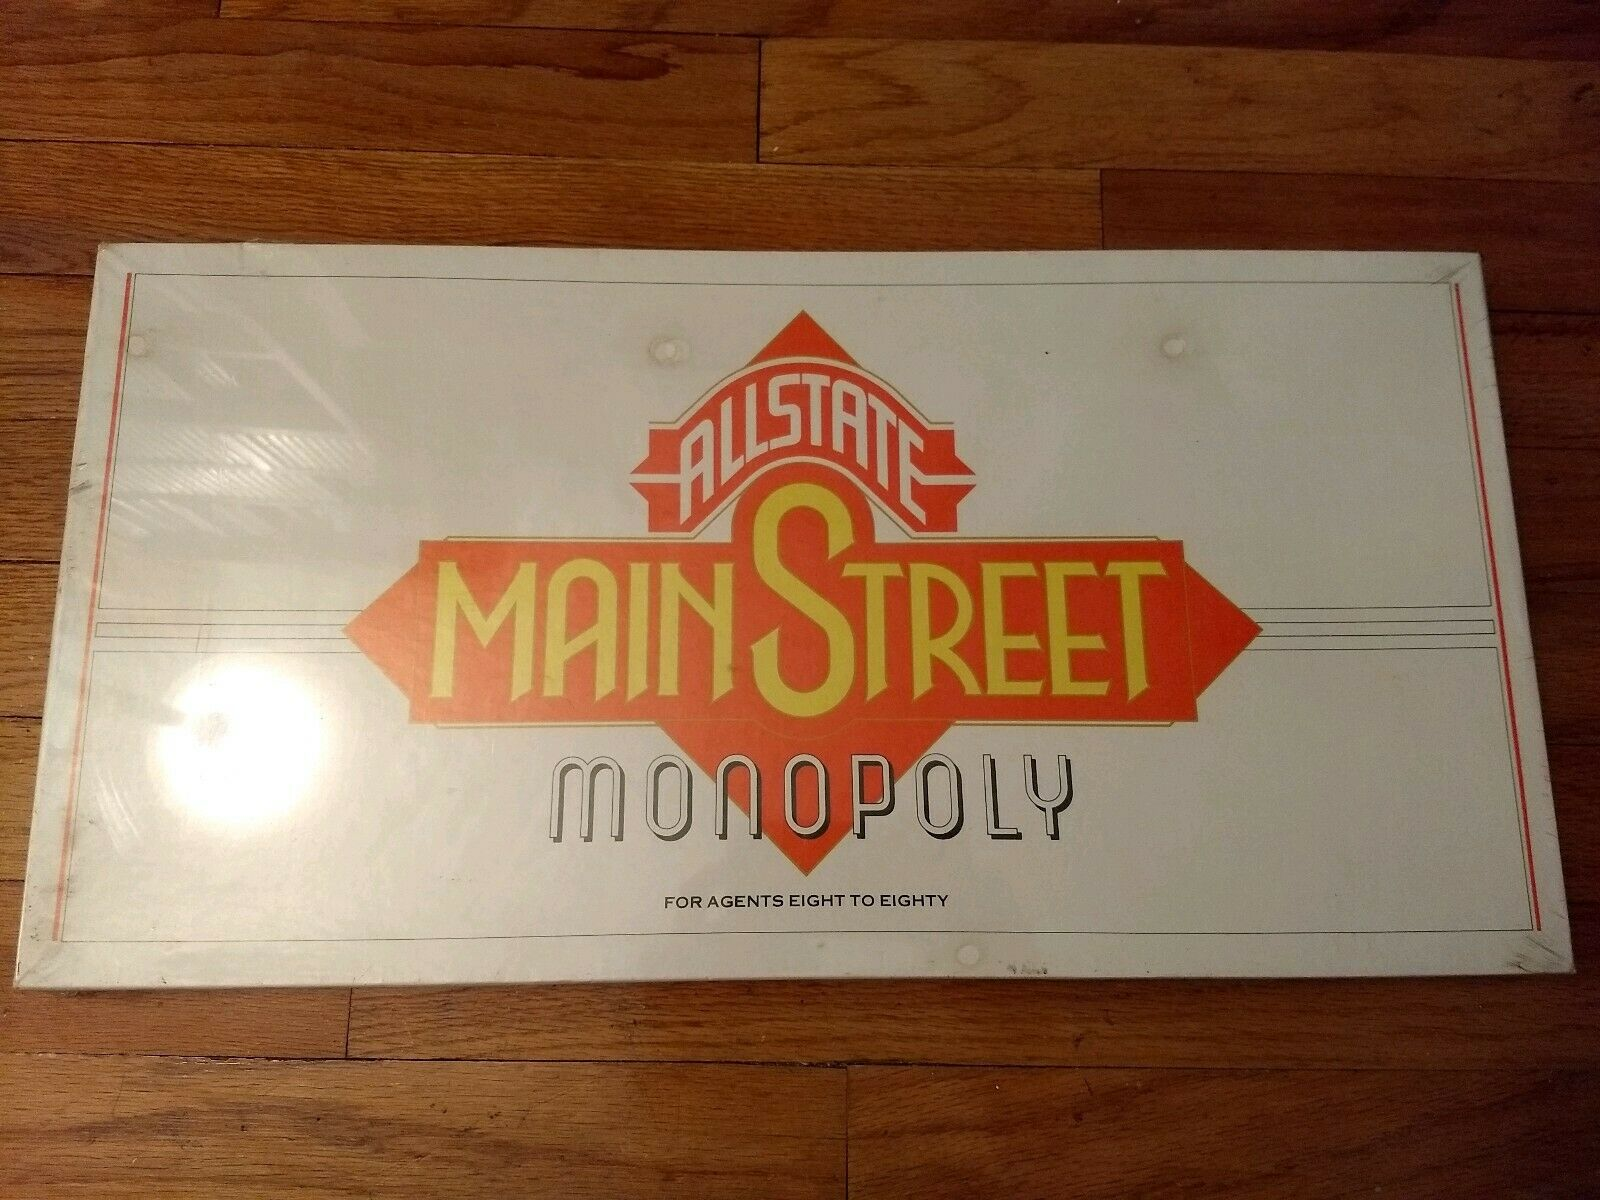 Allstate agent Mainstreet Monopoly Board Game NEW Sealed